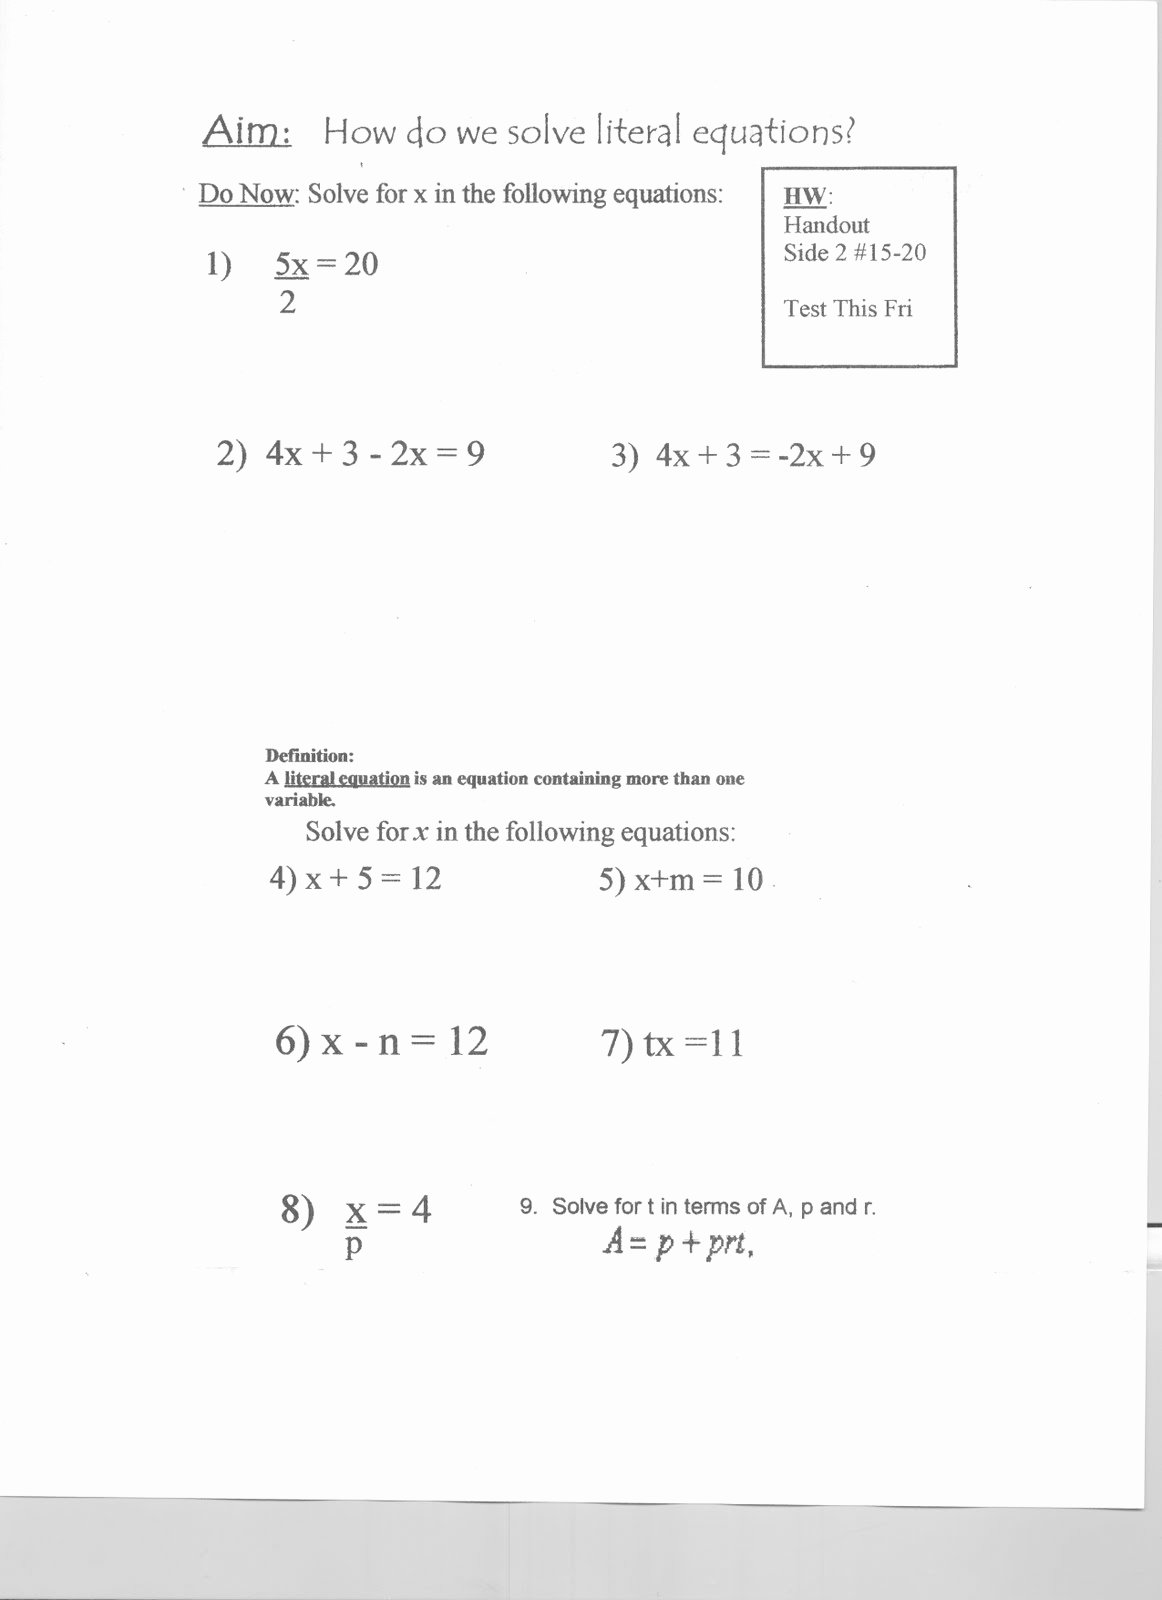 Literal Equations Worksheet Algebra 1 Lovely Mr Napoli S Algebra Aim What are Literal Equations and